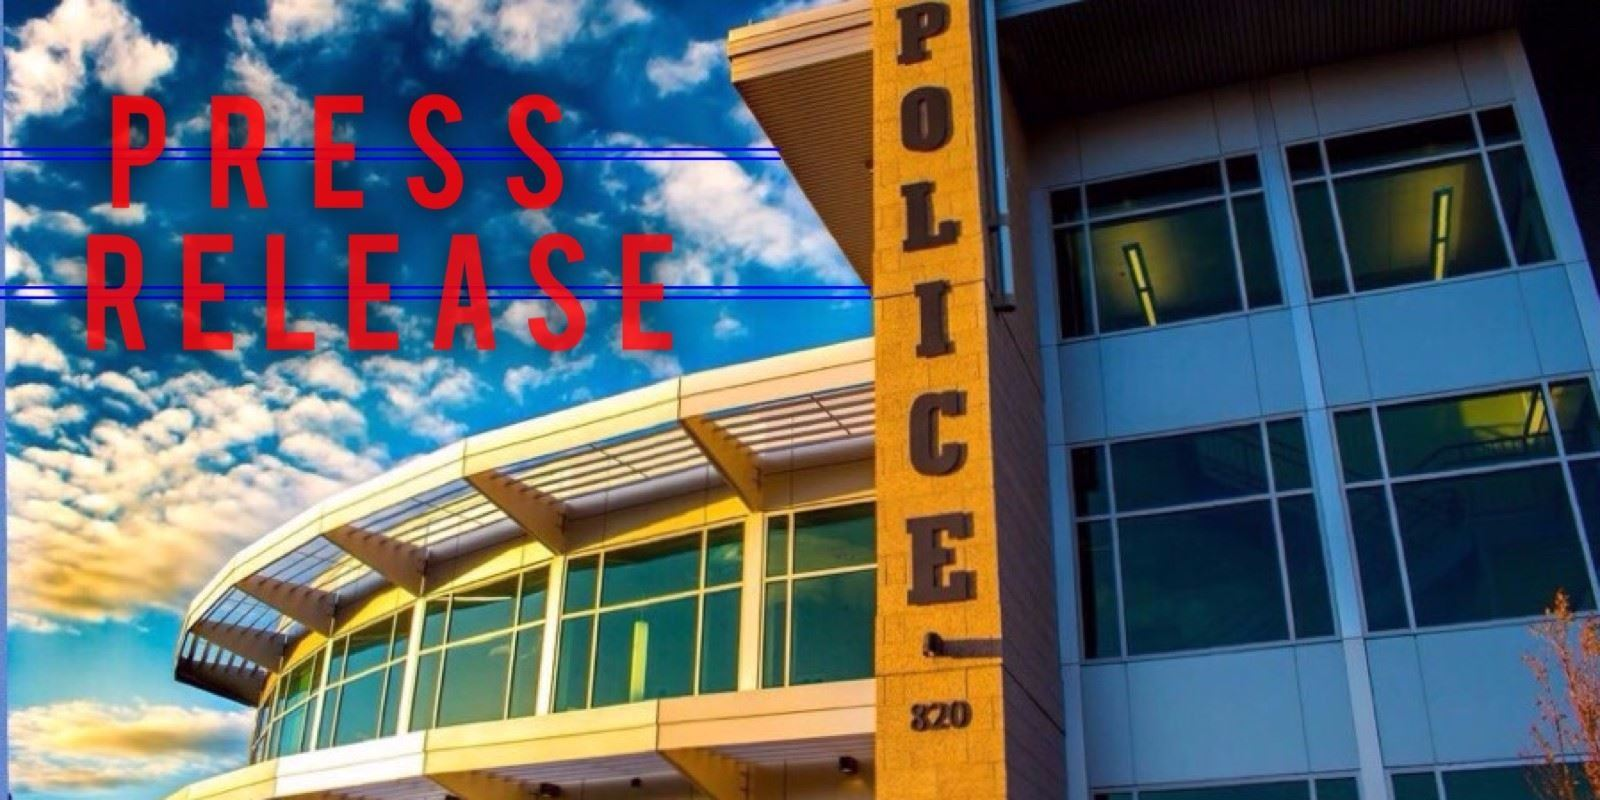 Nampa Police press release logo with picture of Hugh Nichols public safety building